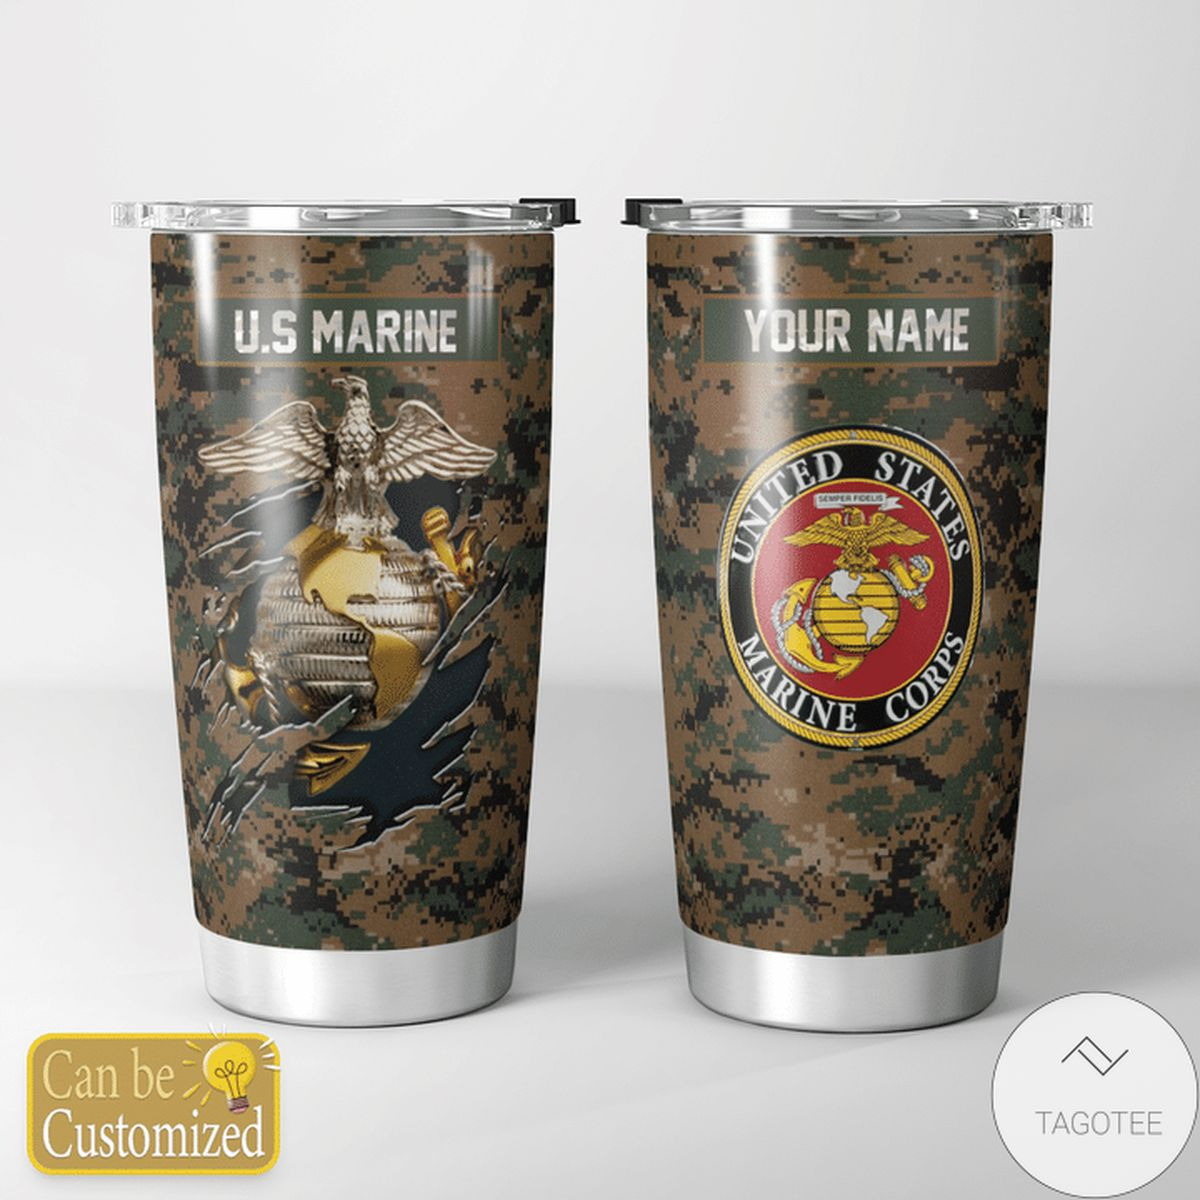 Top Rated Personalized Us Marine Corps Tumbler